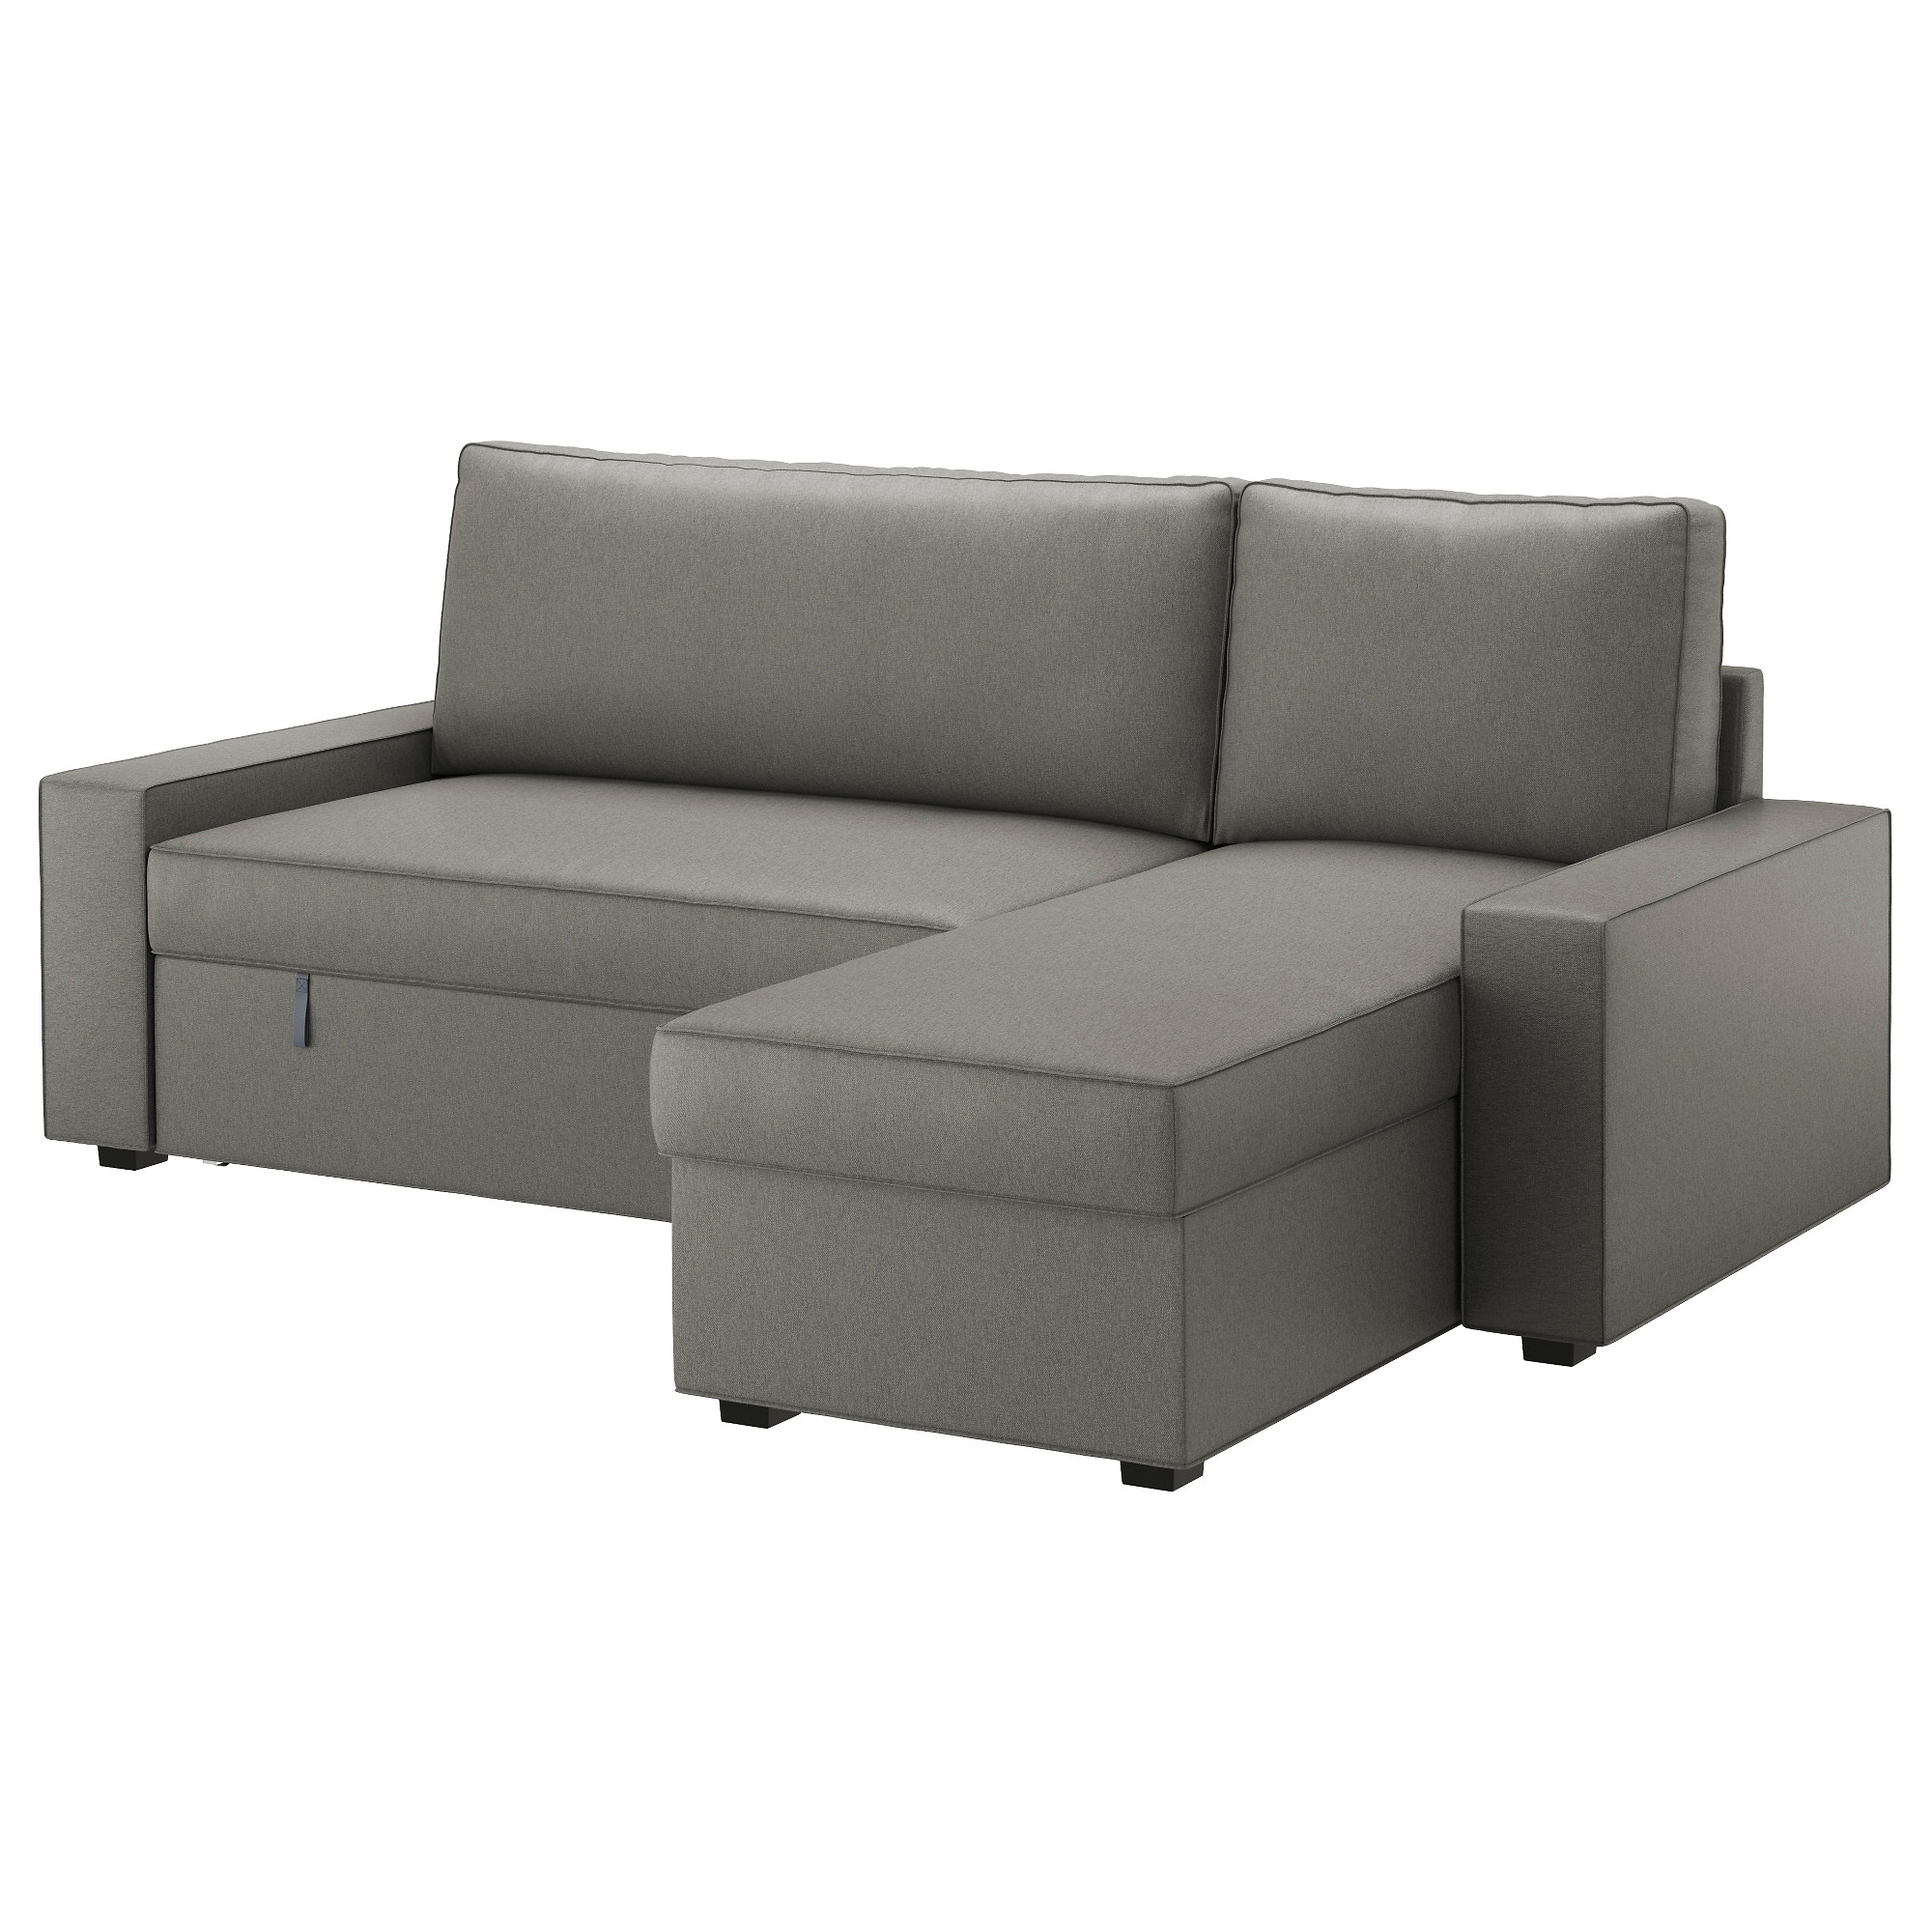 Chaise Grise Ikea Sofa Bed With Chaise Longue Vilasund Borred Grey Green